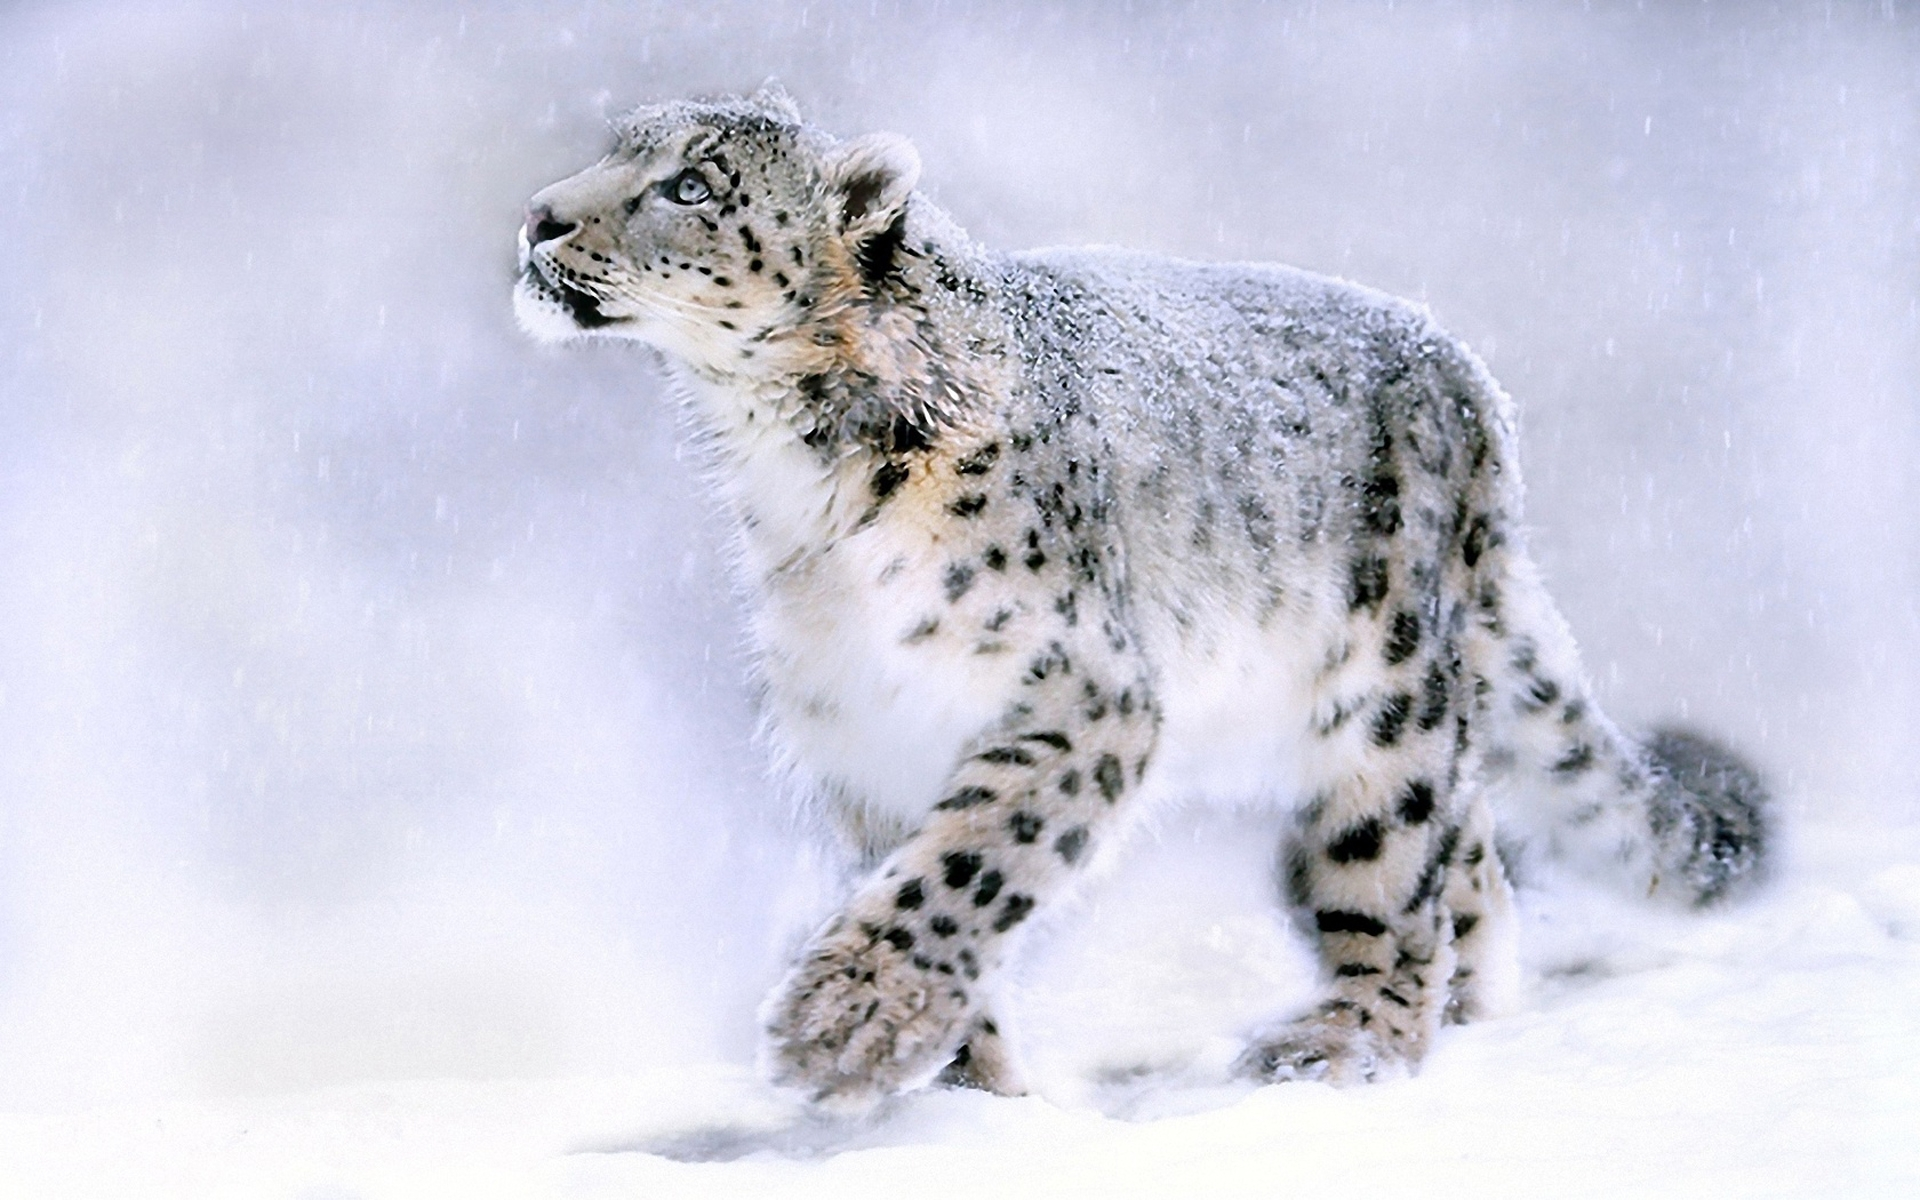 Snow Leopard Wallpapers HD for htc first   New HTC Phone 1920x1200